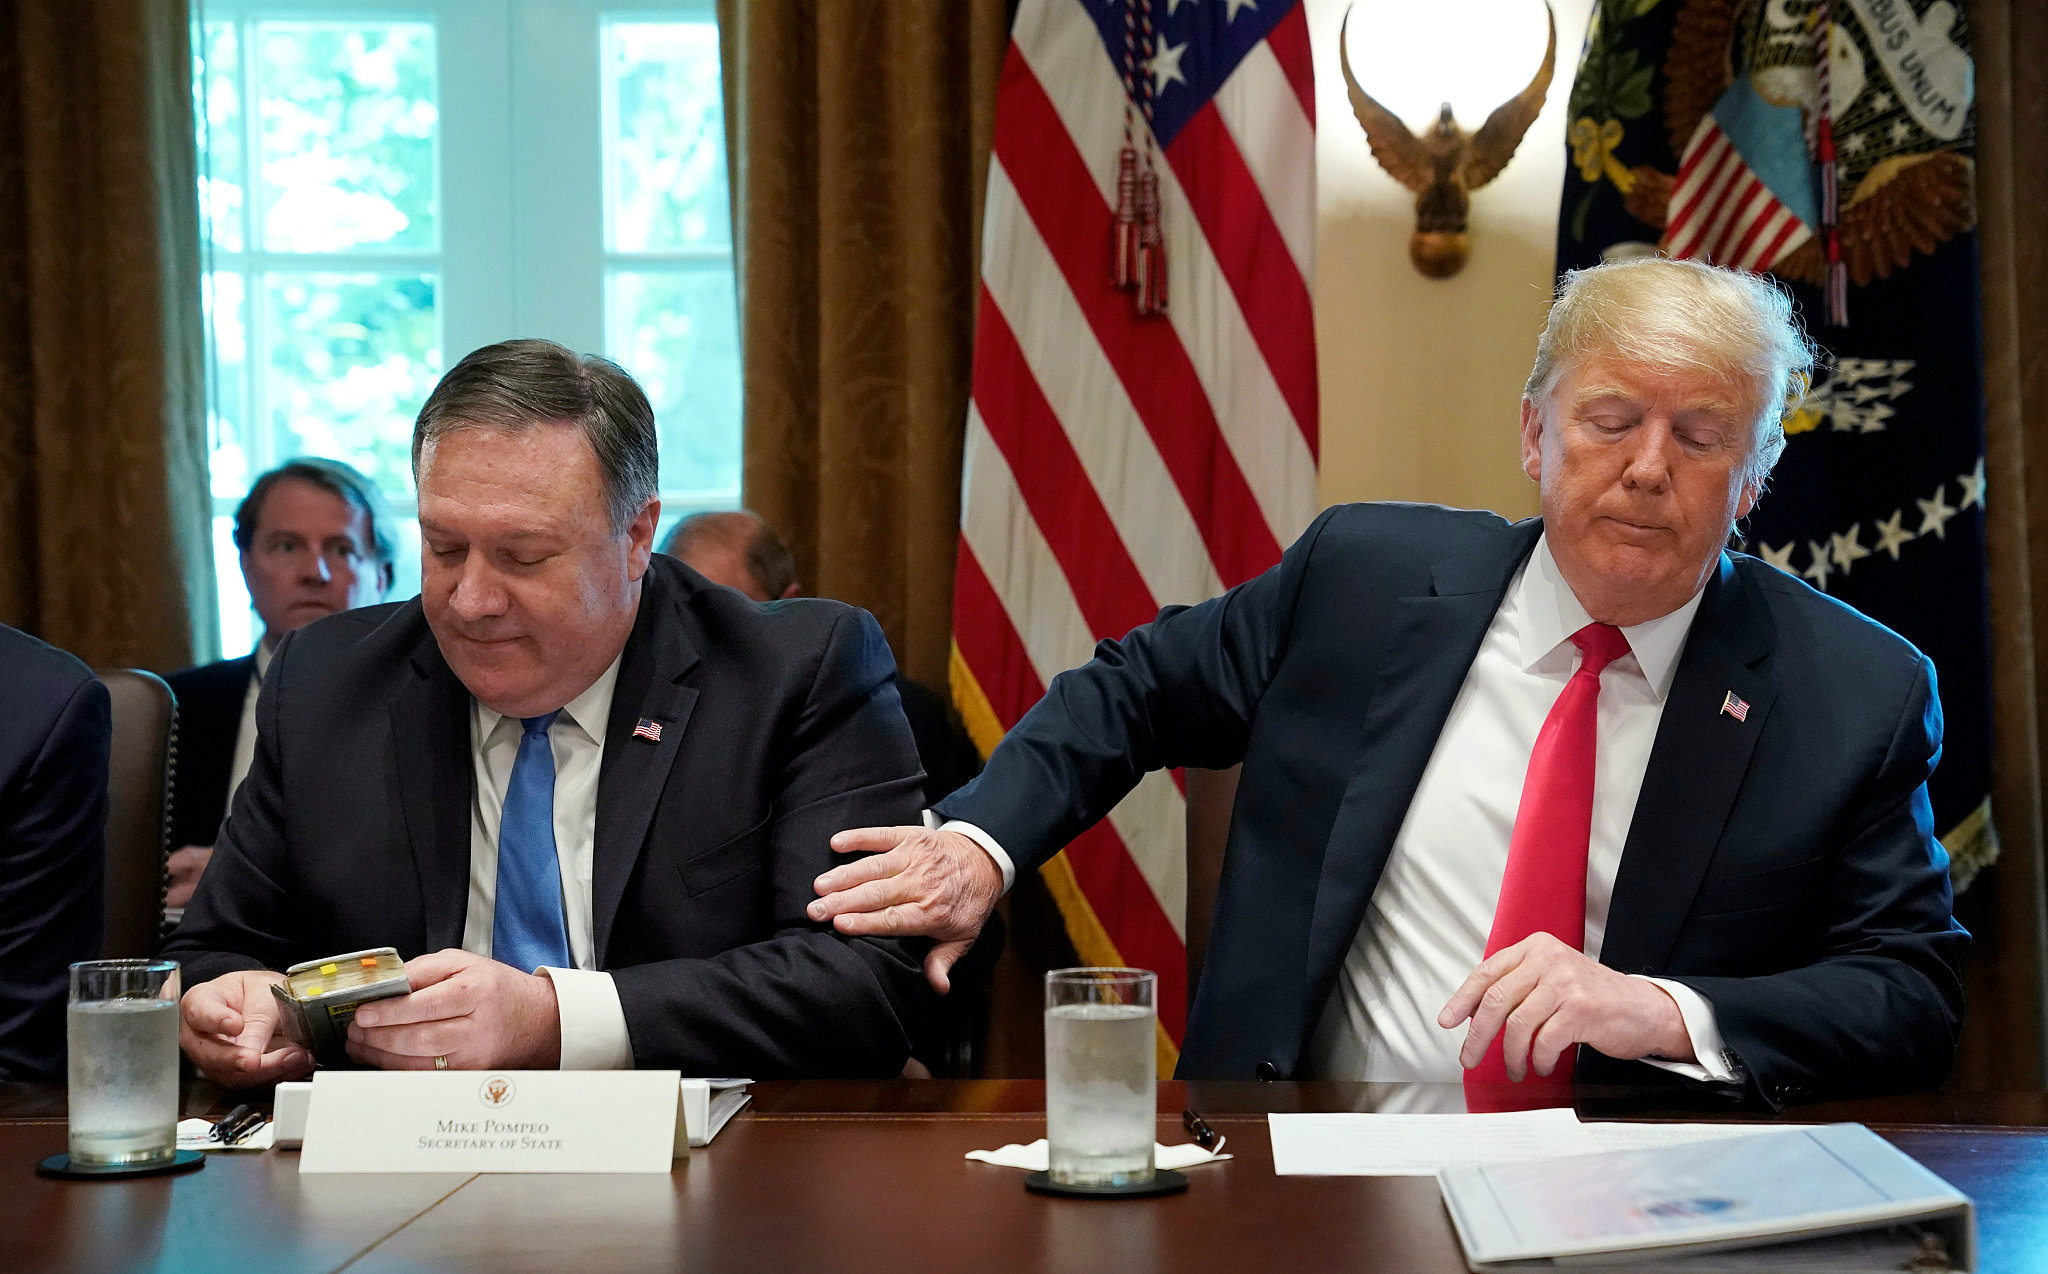 Trump calls off Pompeo's planned trip to DPRK